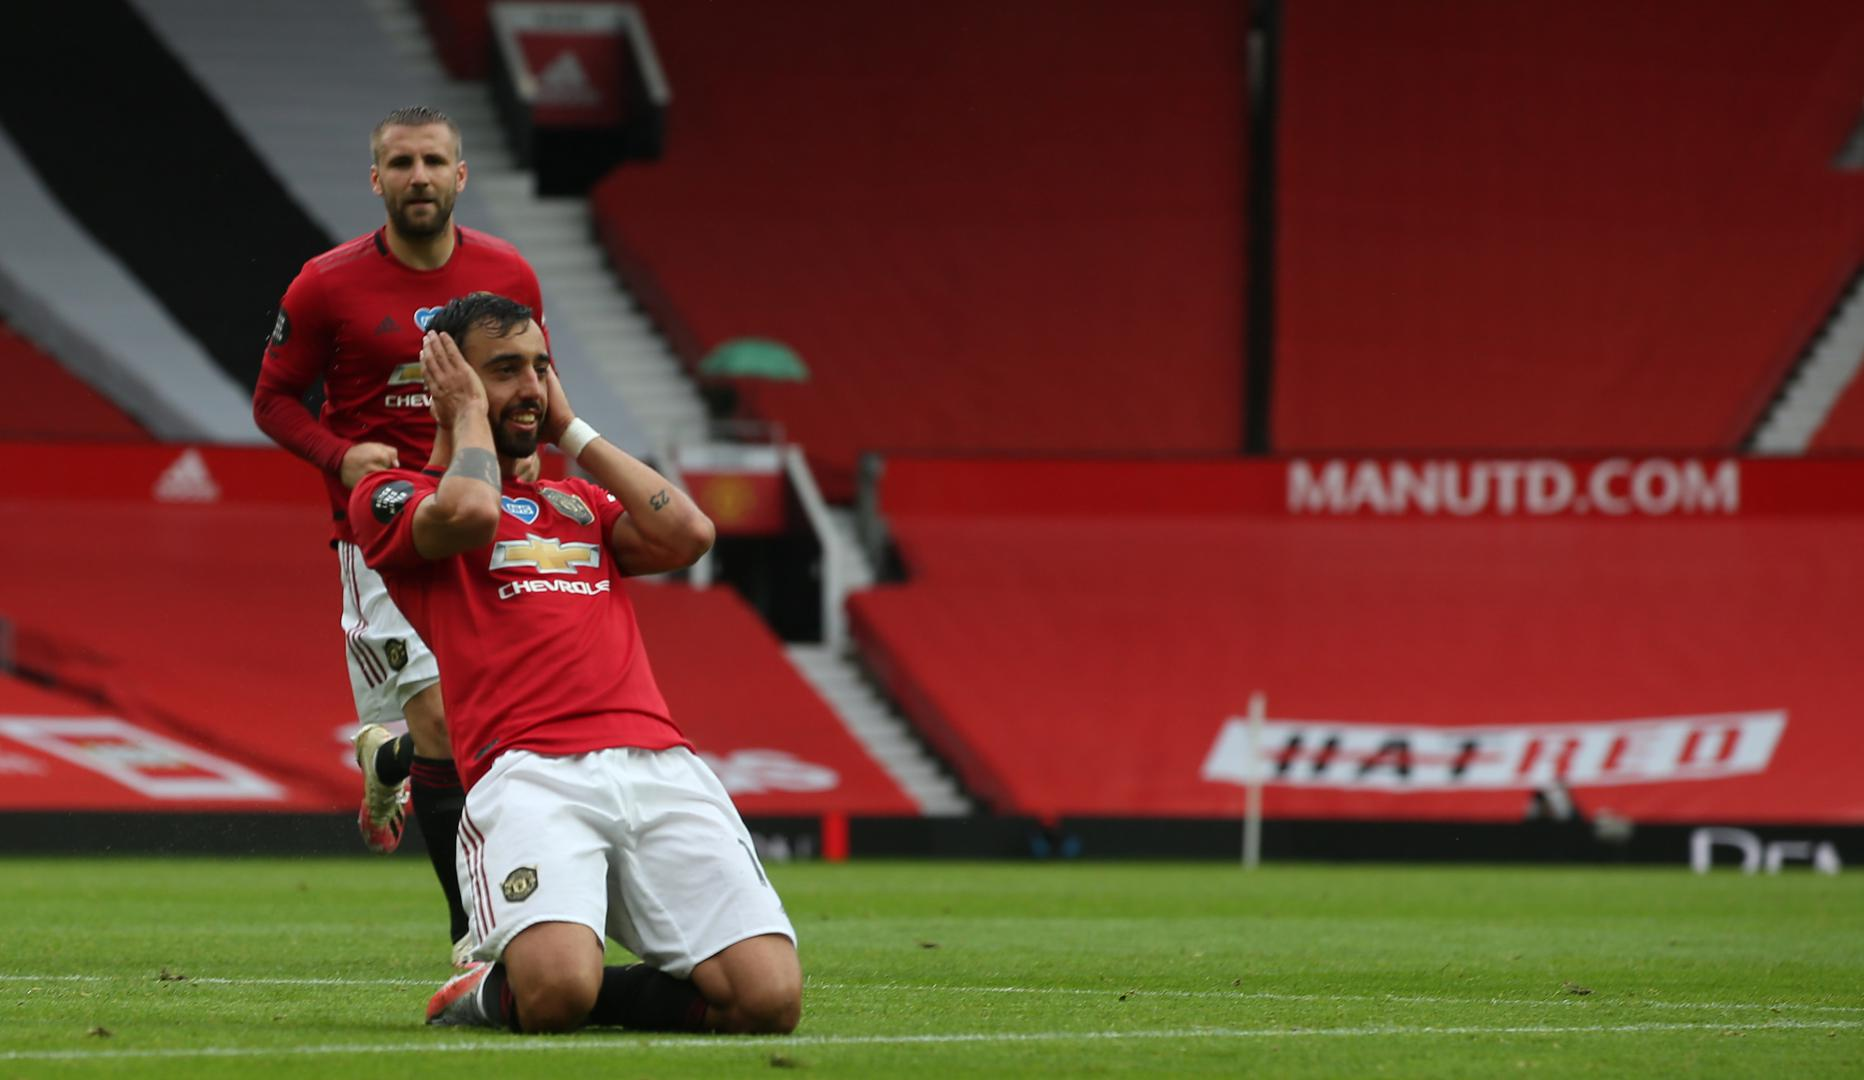 Bruno Fernandes celebrates after scoring against Southampton